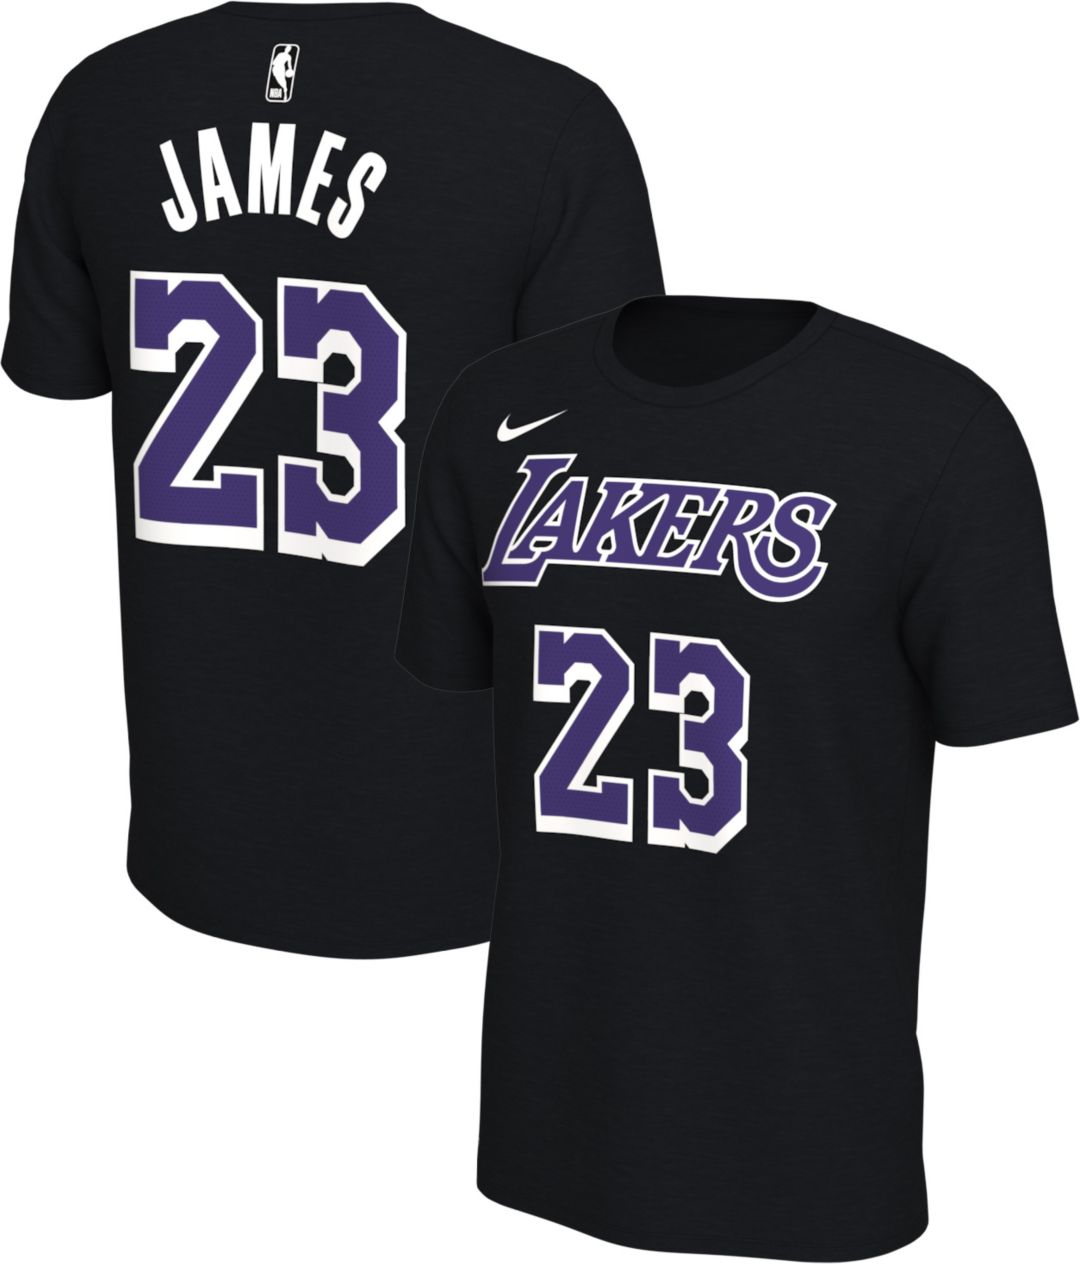 promo code 2a7bd 84398 Nike Men's Los Angeles Lakers LeBron James #23 Dri-FIT Black T-Shirt